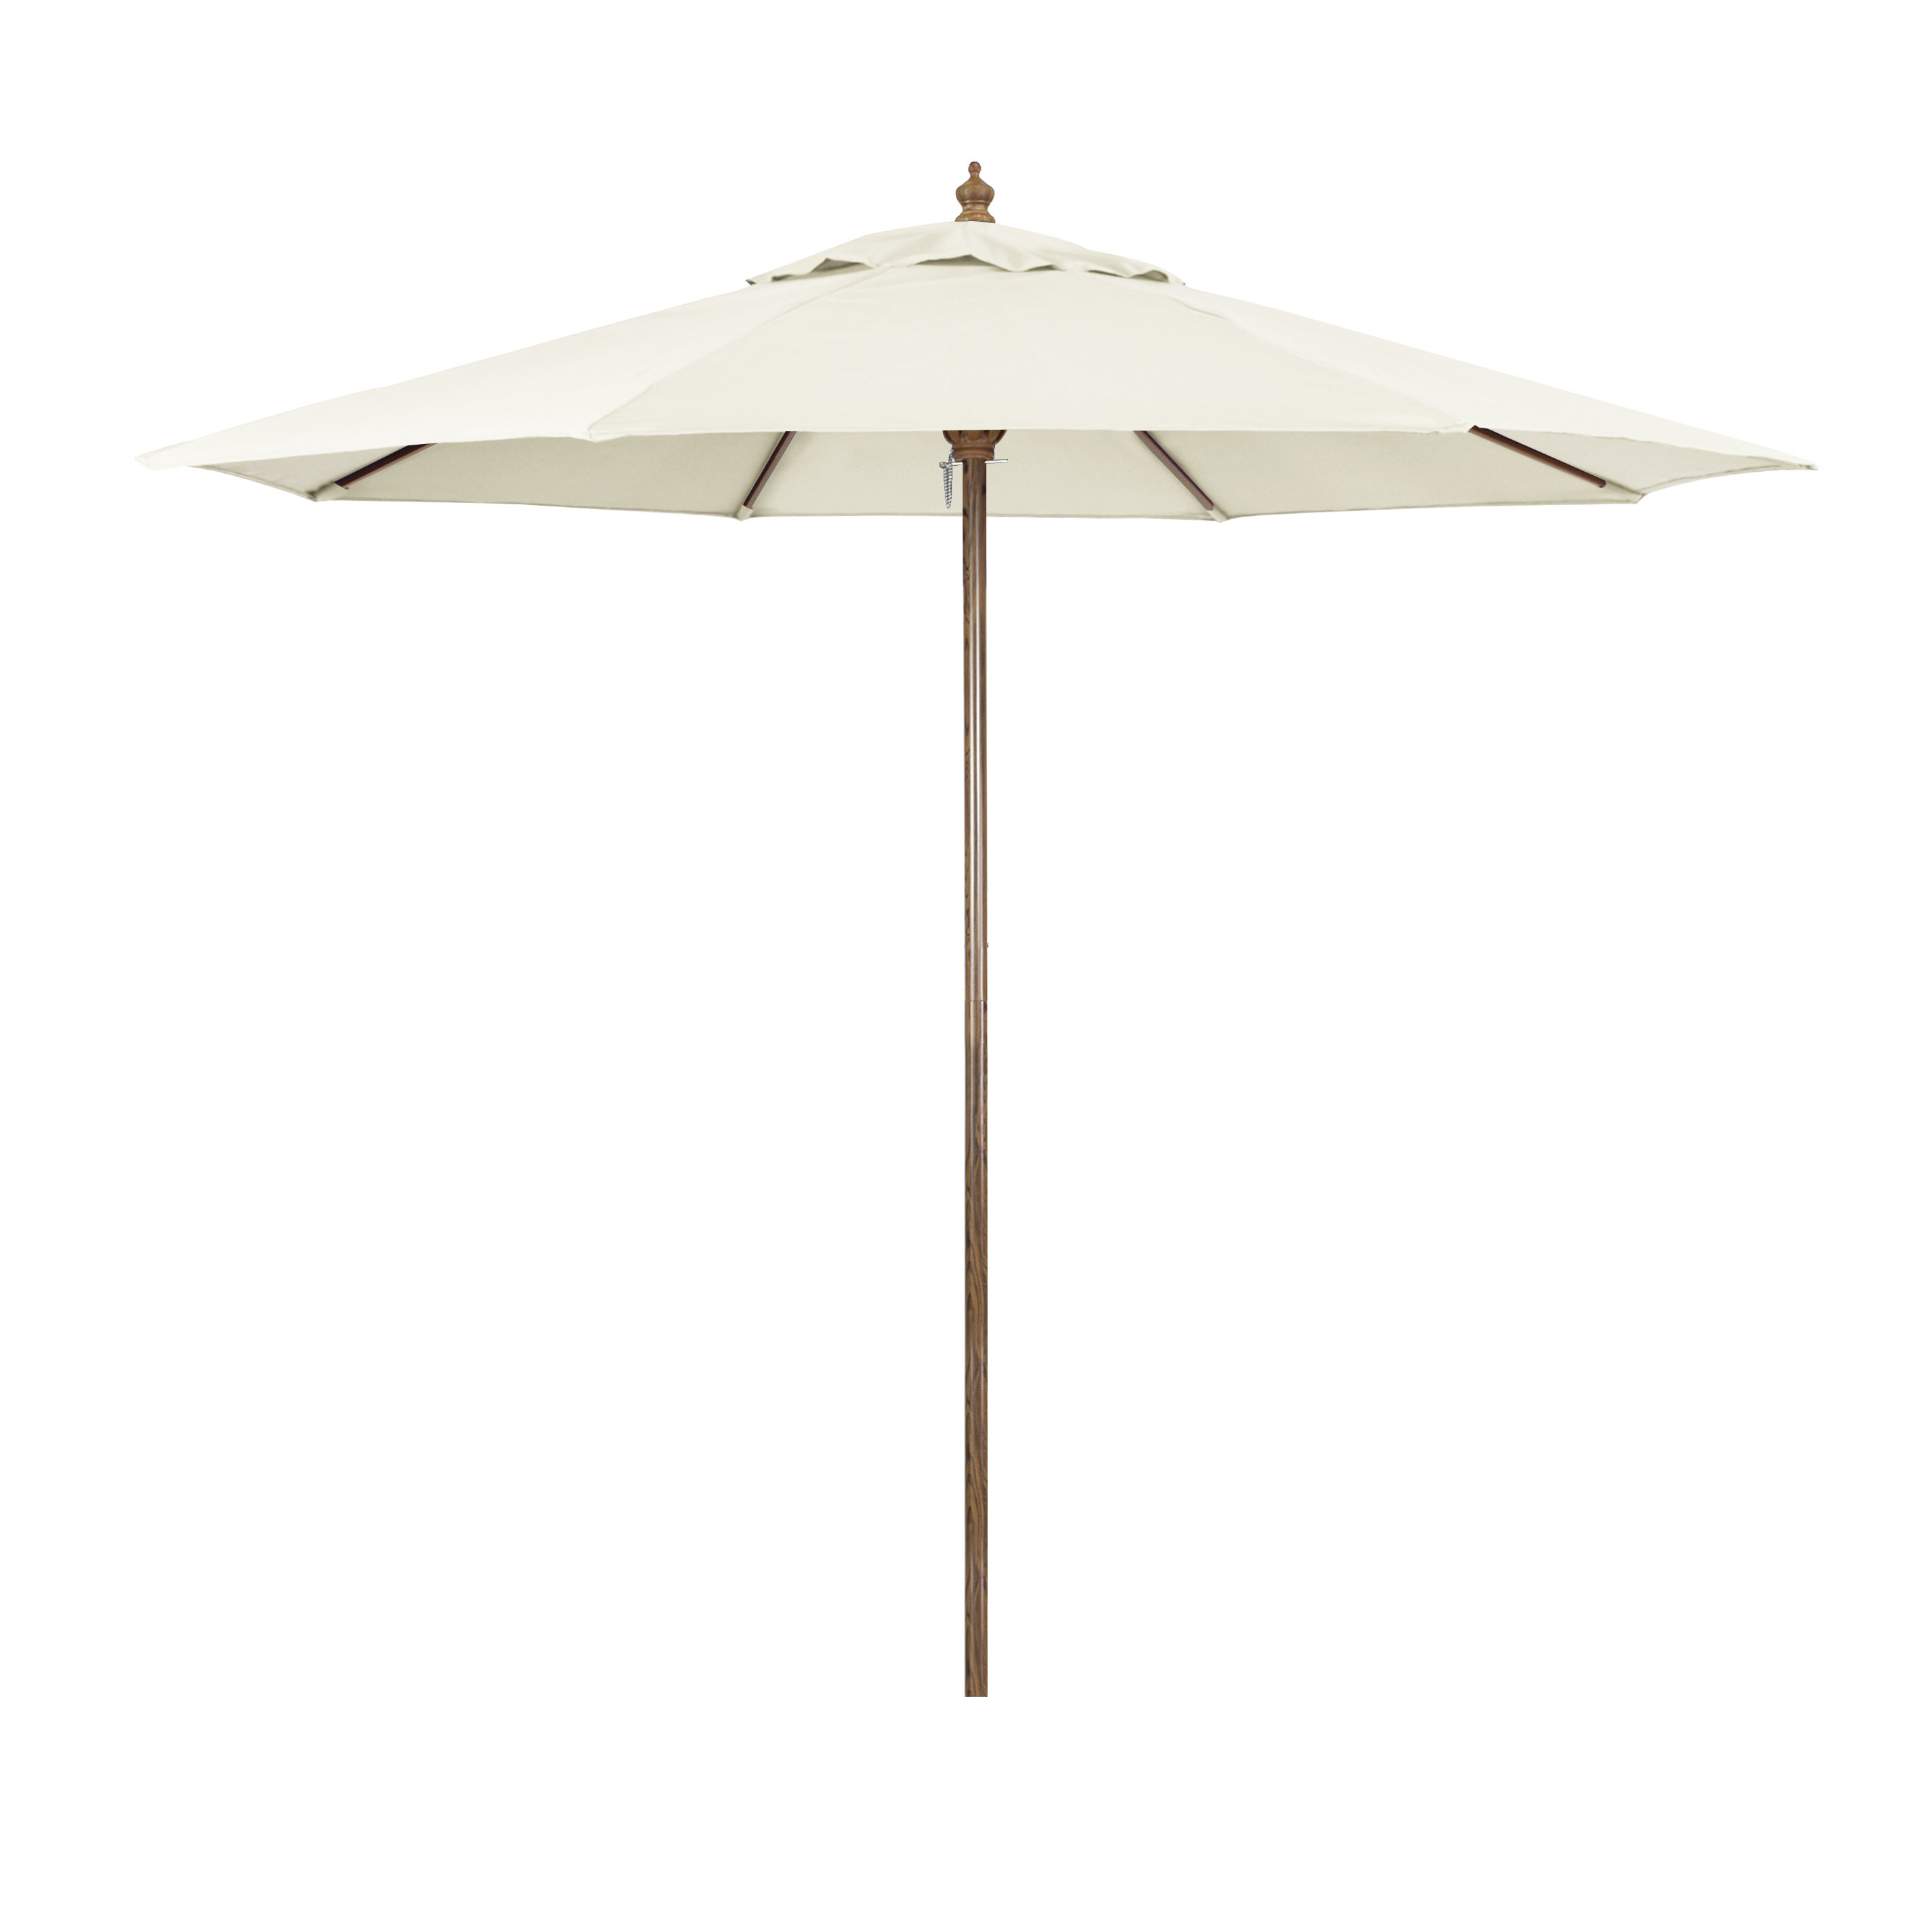 Most Popular Ryant 9' Market Umbrella Intended For Kelton Market Umbrellas (View 20 of 20)